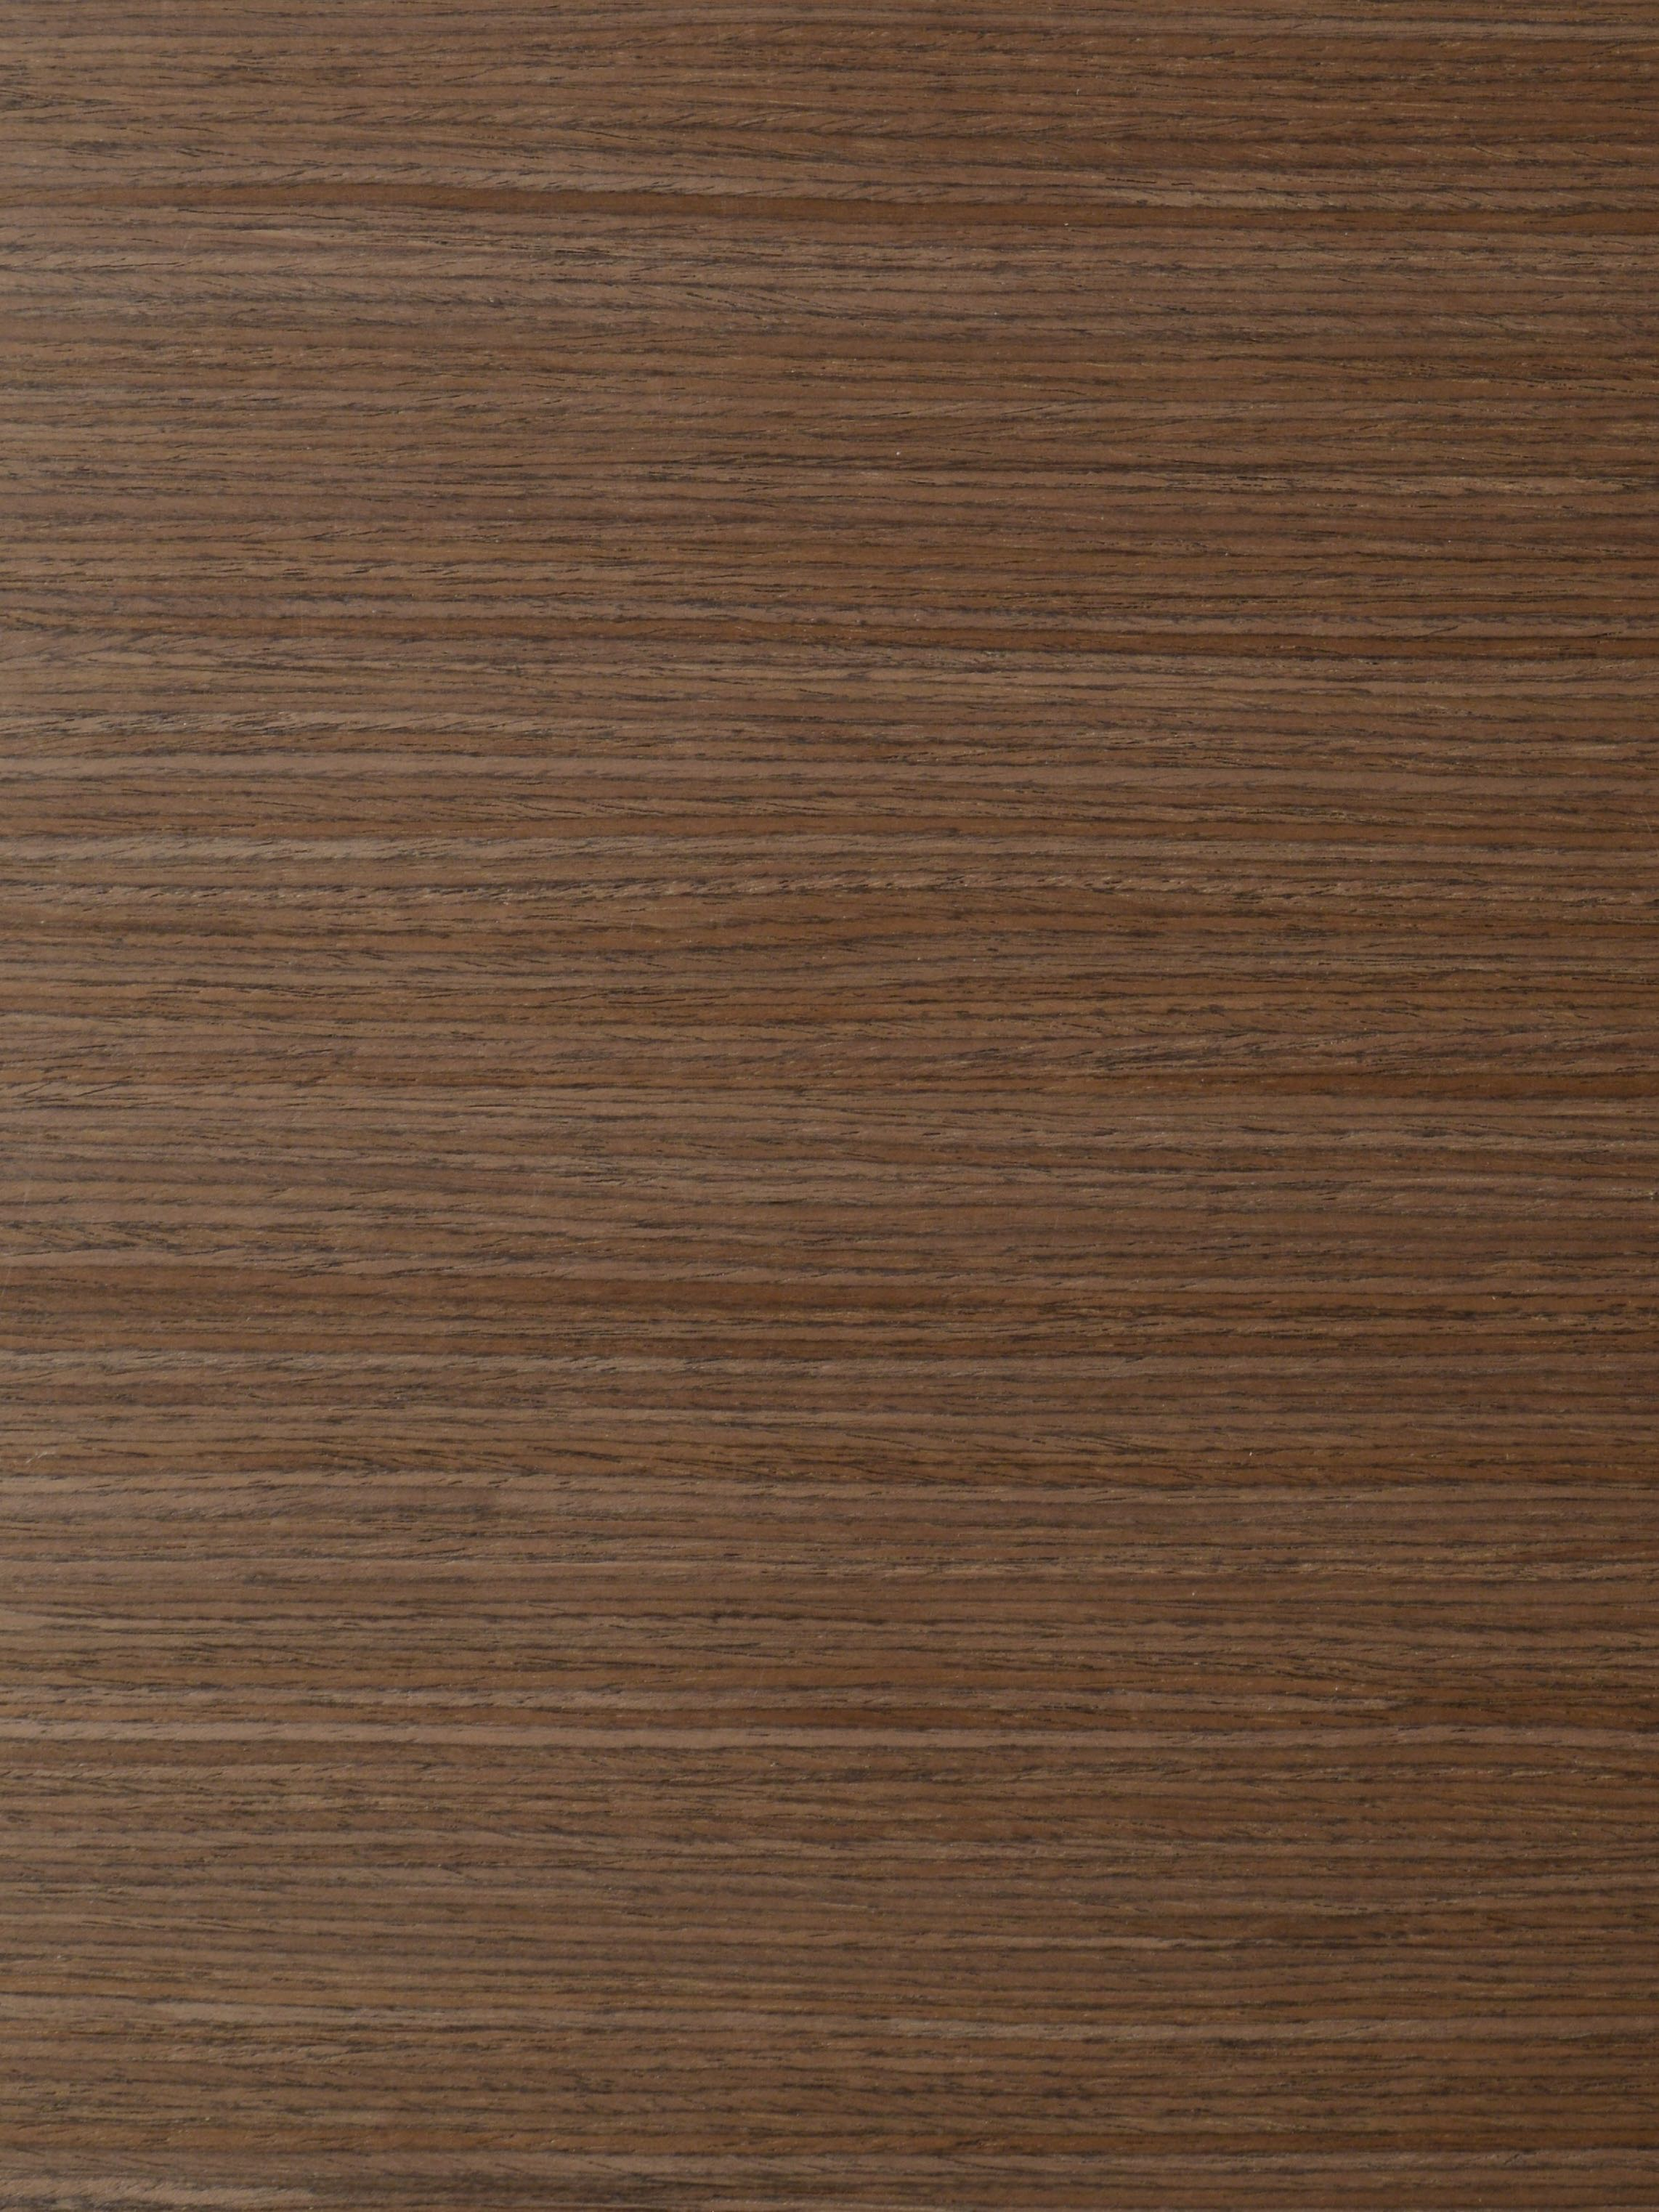 Recon Veneer Quartered Walnut Kitchen Cabinet Door